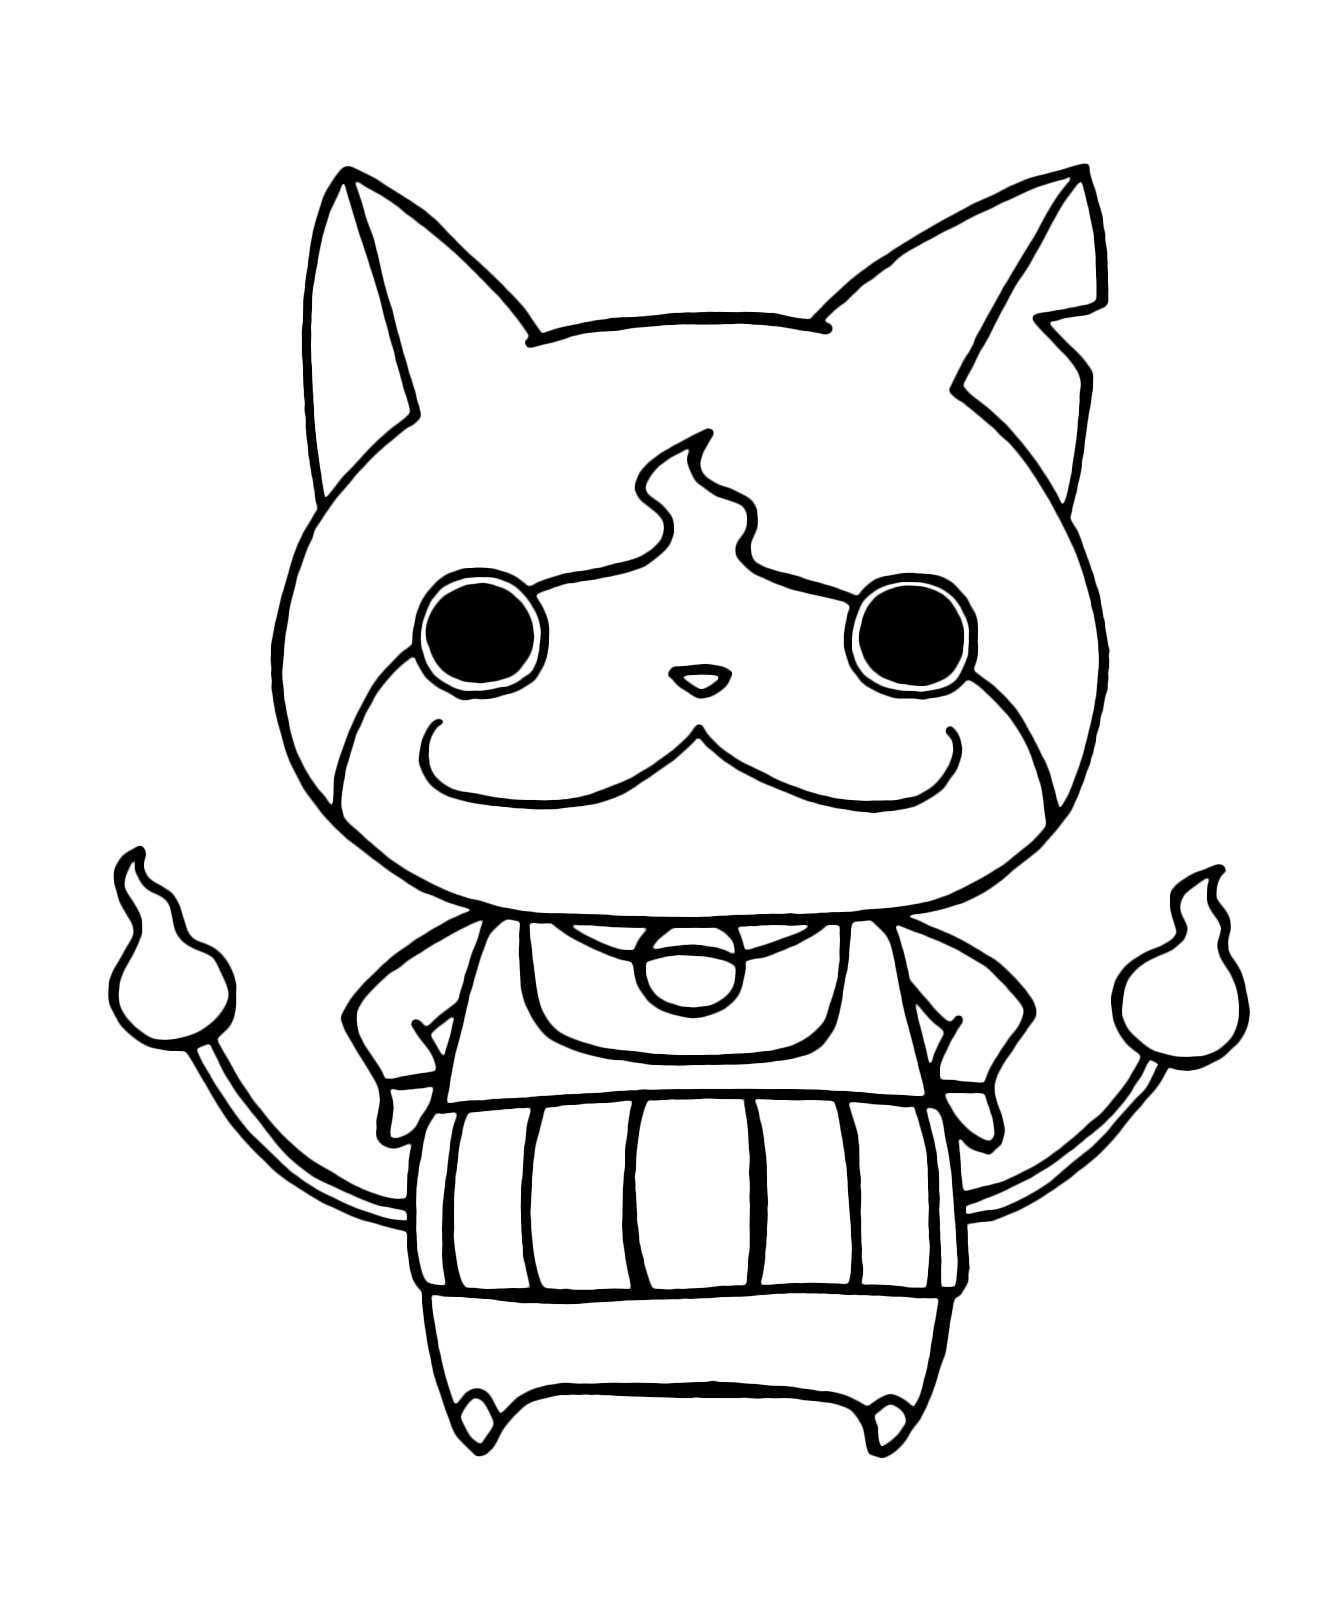 Kai Watch Yo Kai Jibanyan with His Arms On His Hips Download Of Yo Kai Watch Coloring Pages Printable Collection